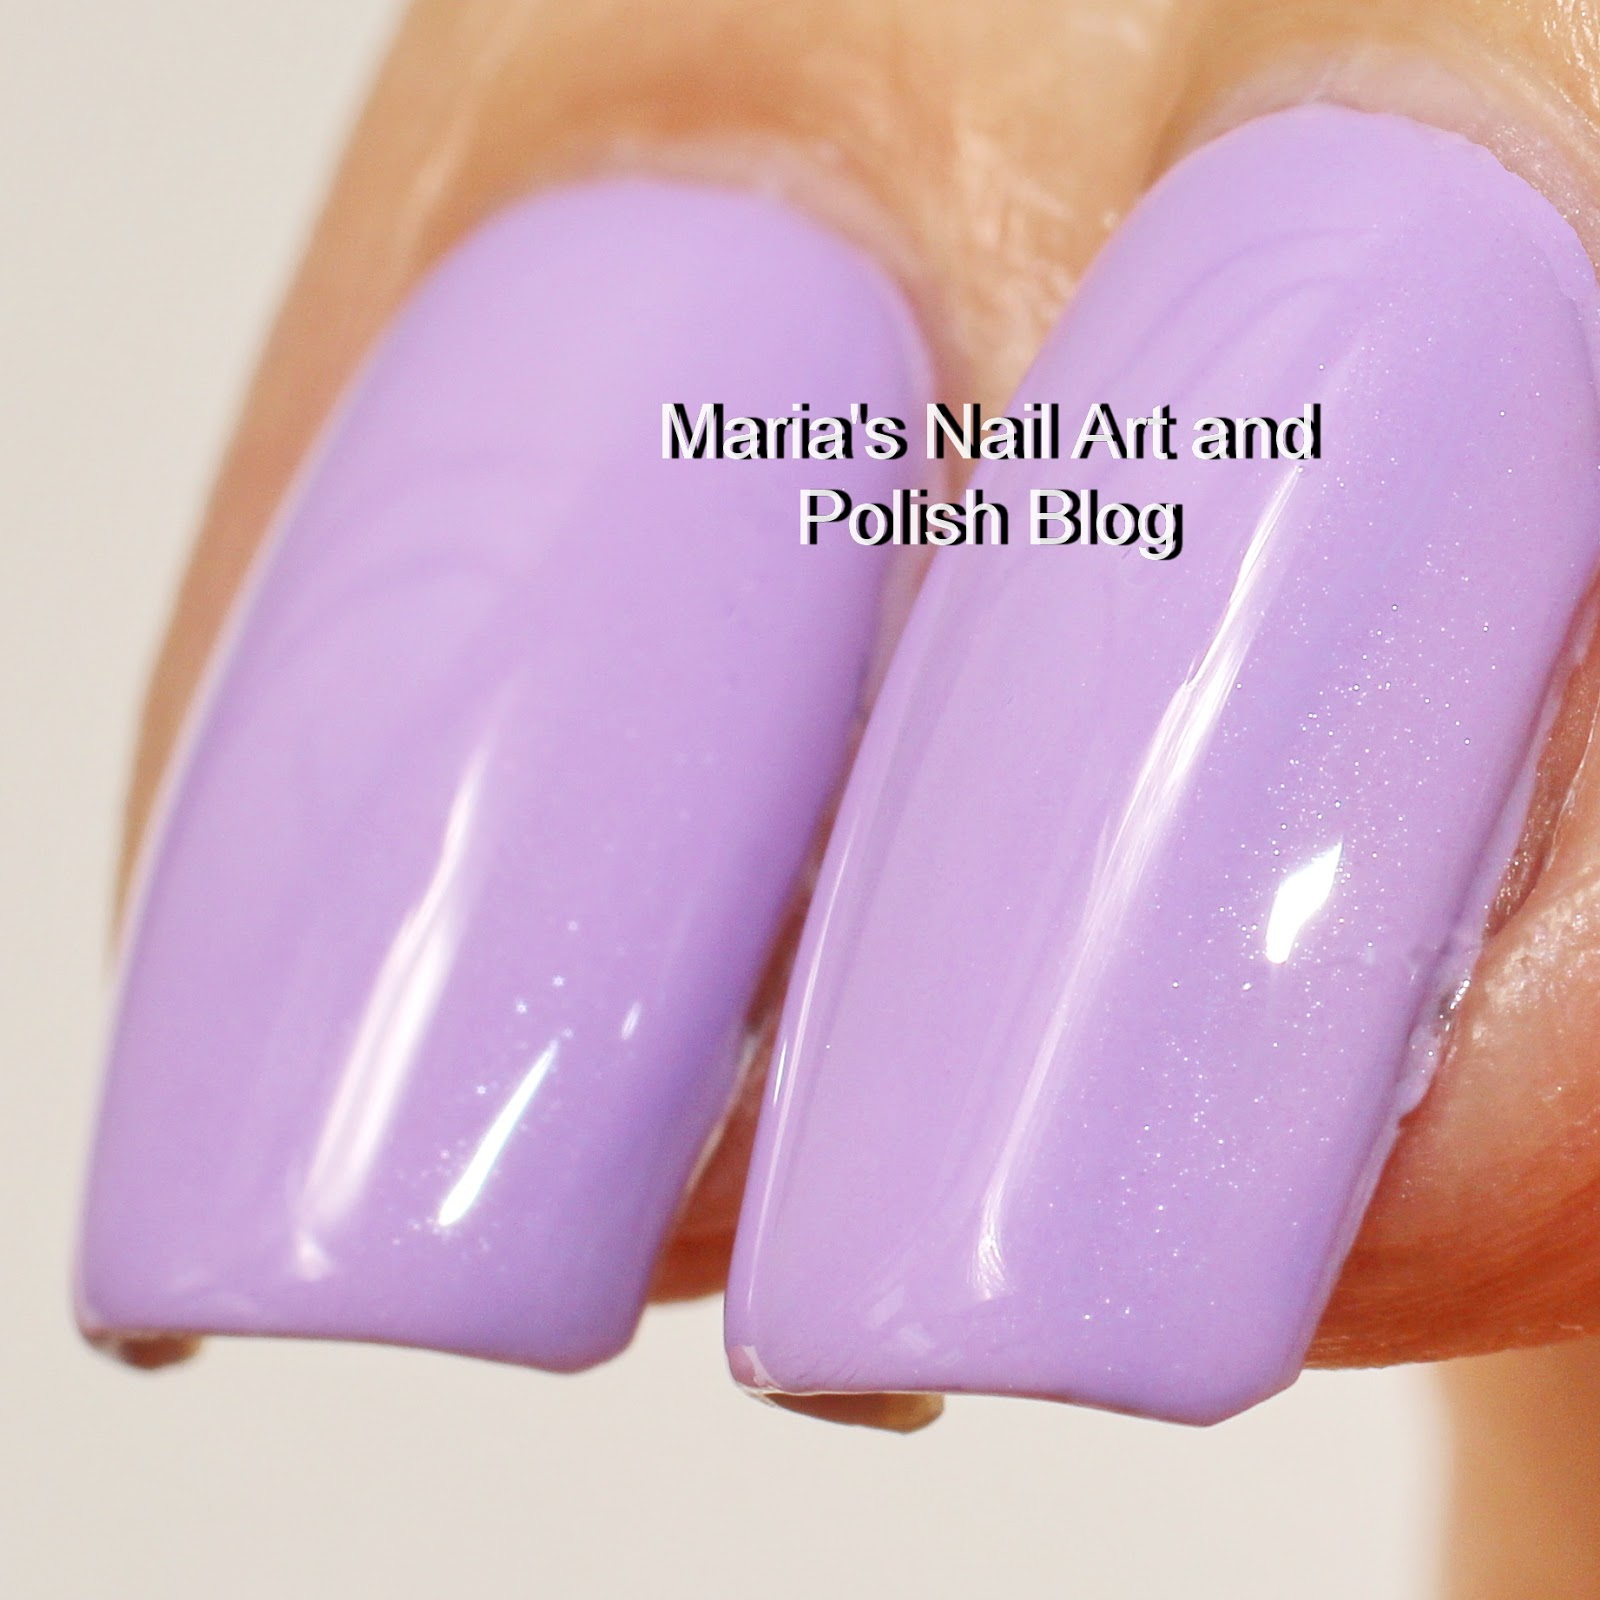 Marias Nail Art And Polish Blog Subtle Floral Nail Art On: Marias Nail Art And Polish Blog: Polish My Life 1950s Mint